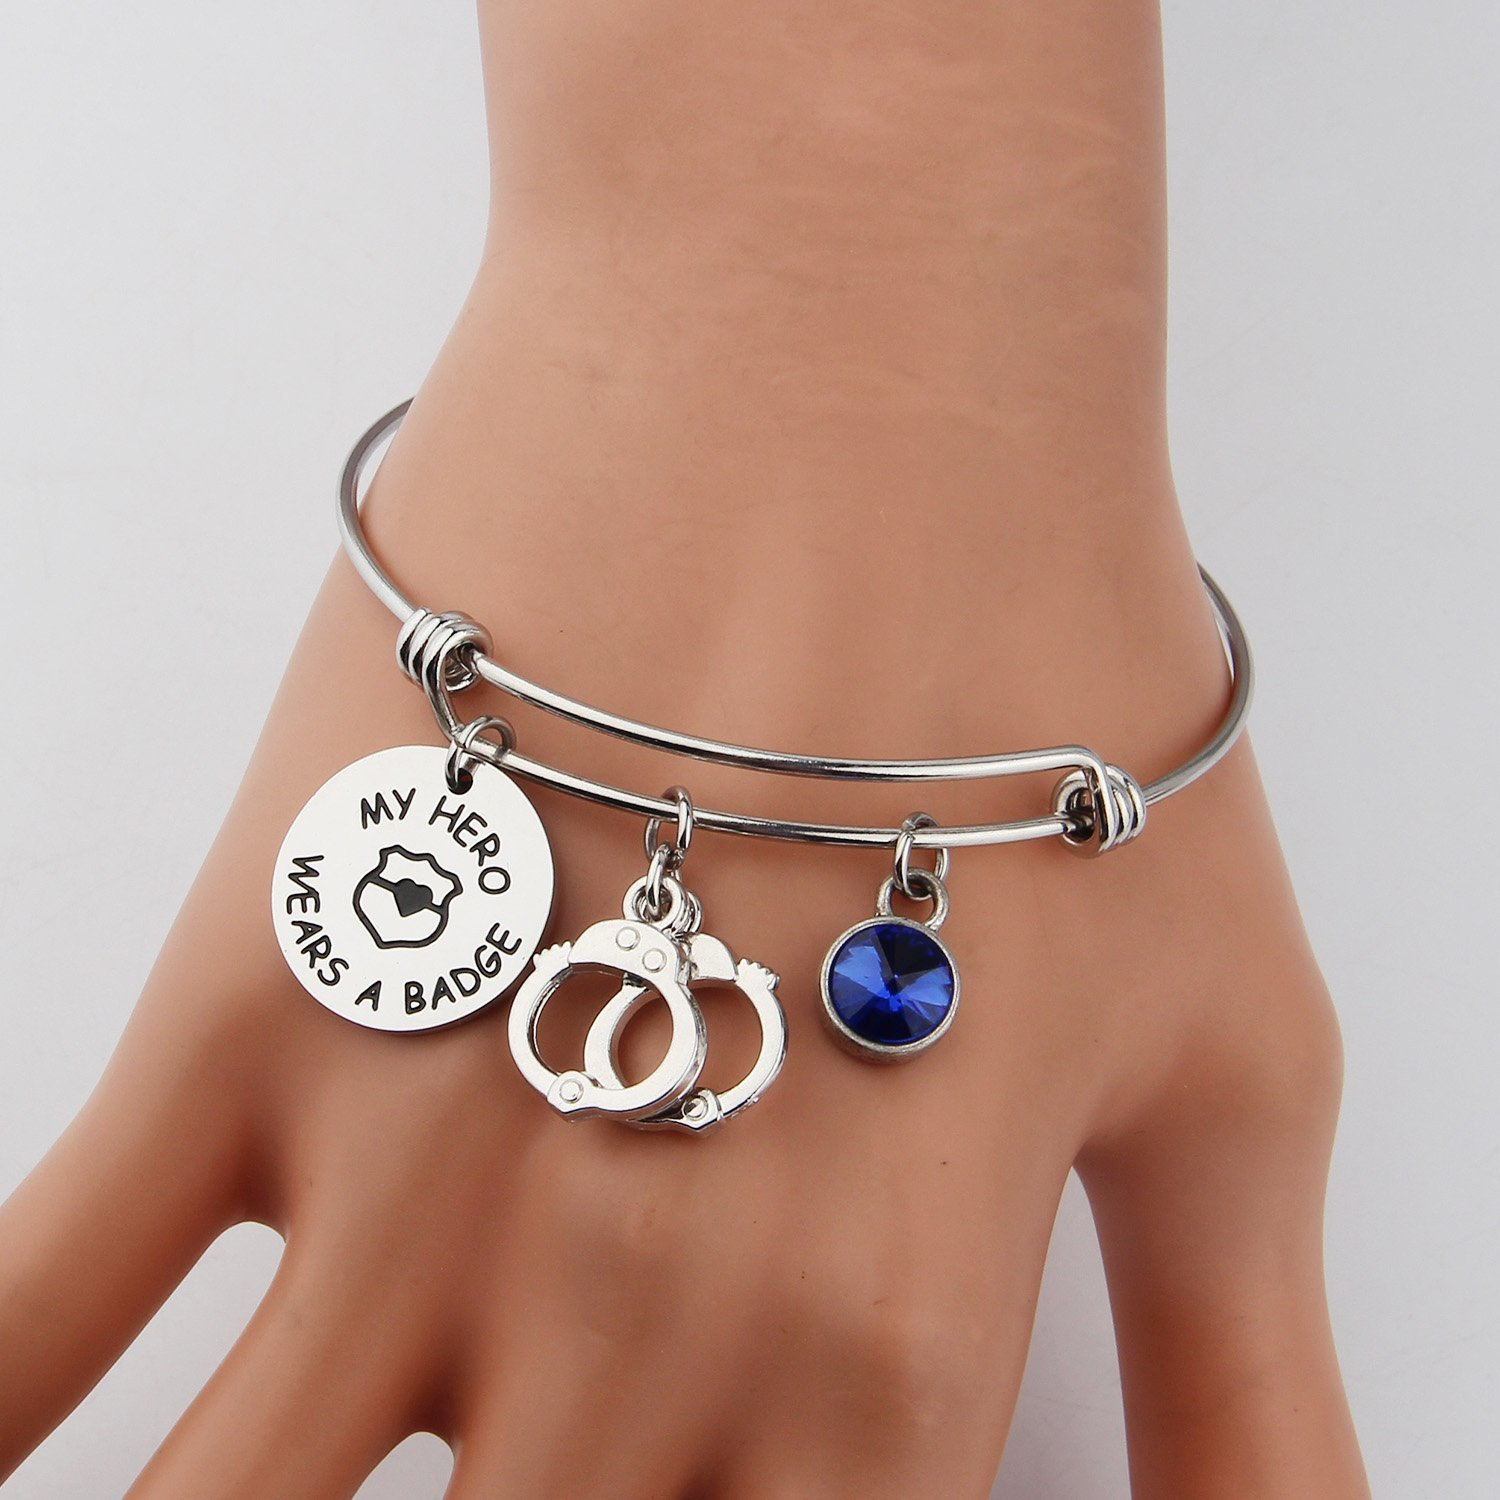 KUIYAI My Hero Wears a Badge Police Bracelet with Handcuff Charm Bracelet for Dad Mom (bracelet silver) by KUIYAI (Image #5)